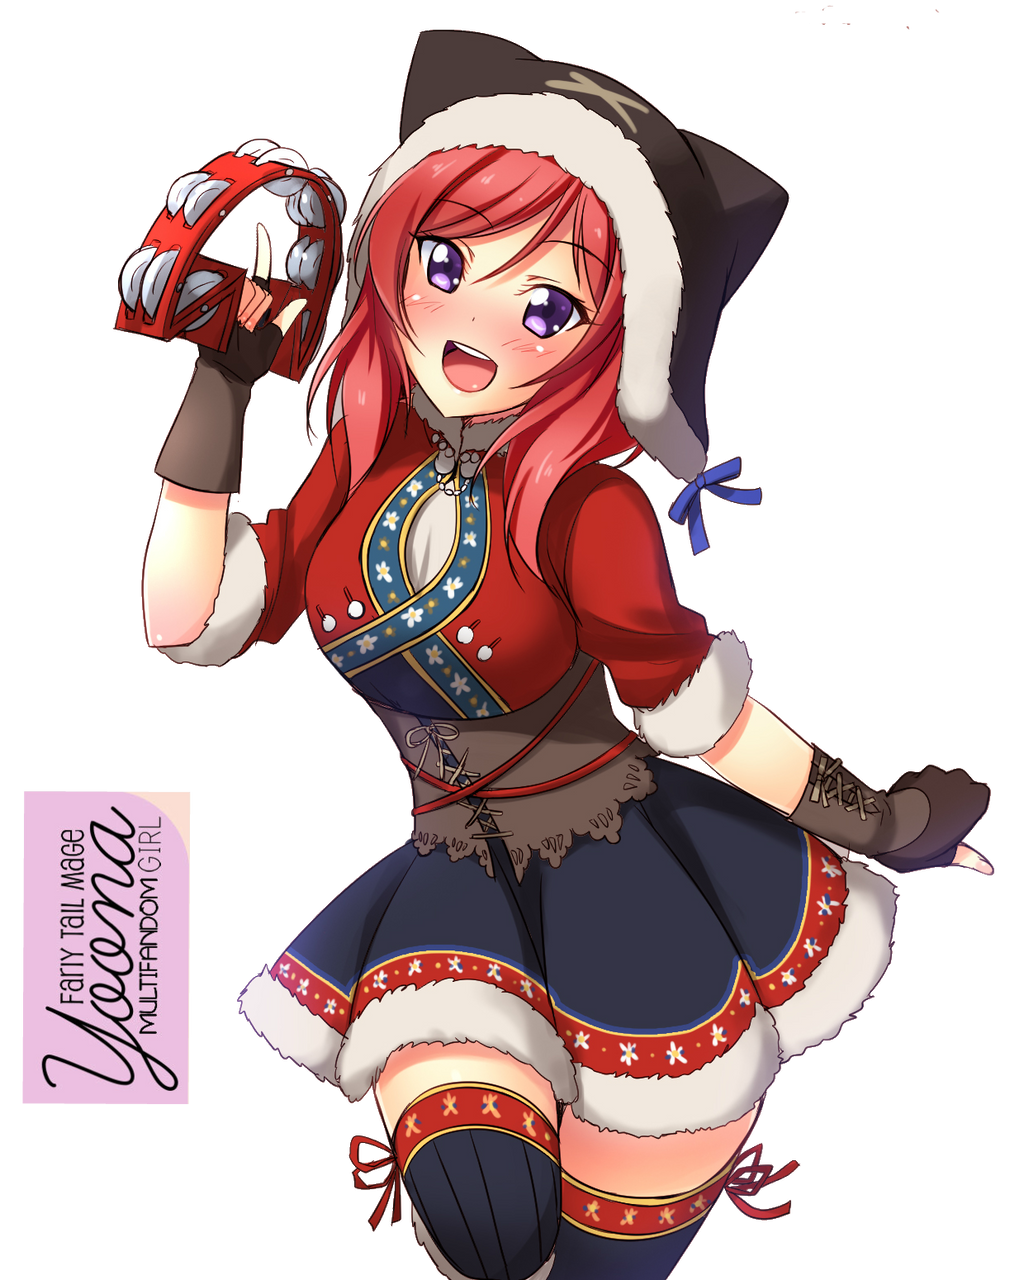 Love Live Iphone Wallpaper Maki : Love Live:Maki Nishikino Render by YoonaFandom on DeviantArt